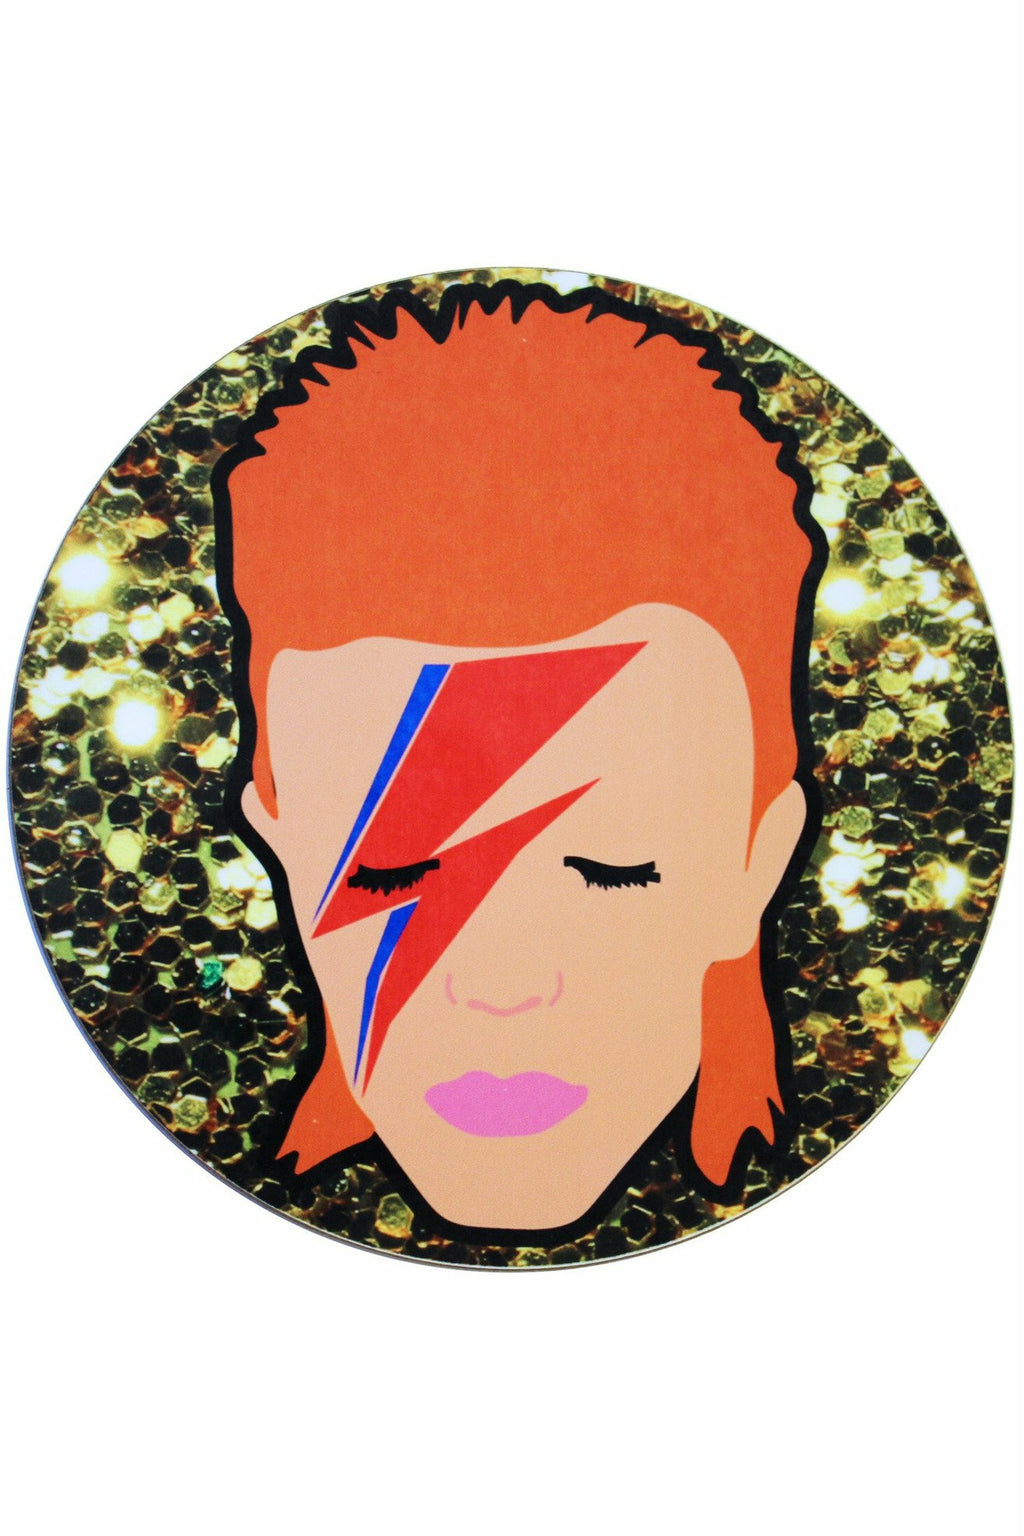 Bowie Coaster